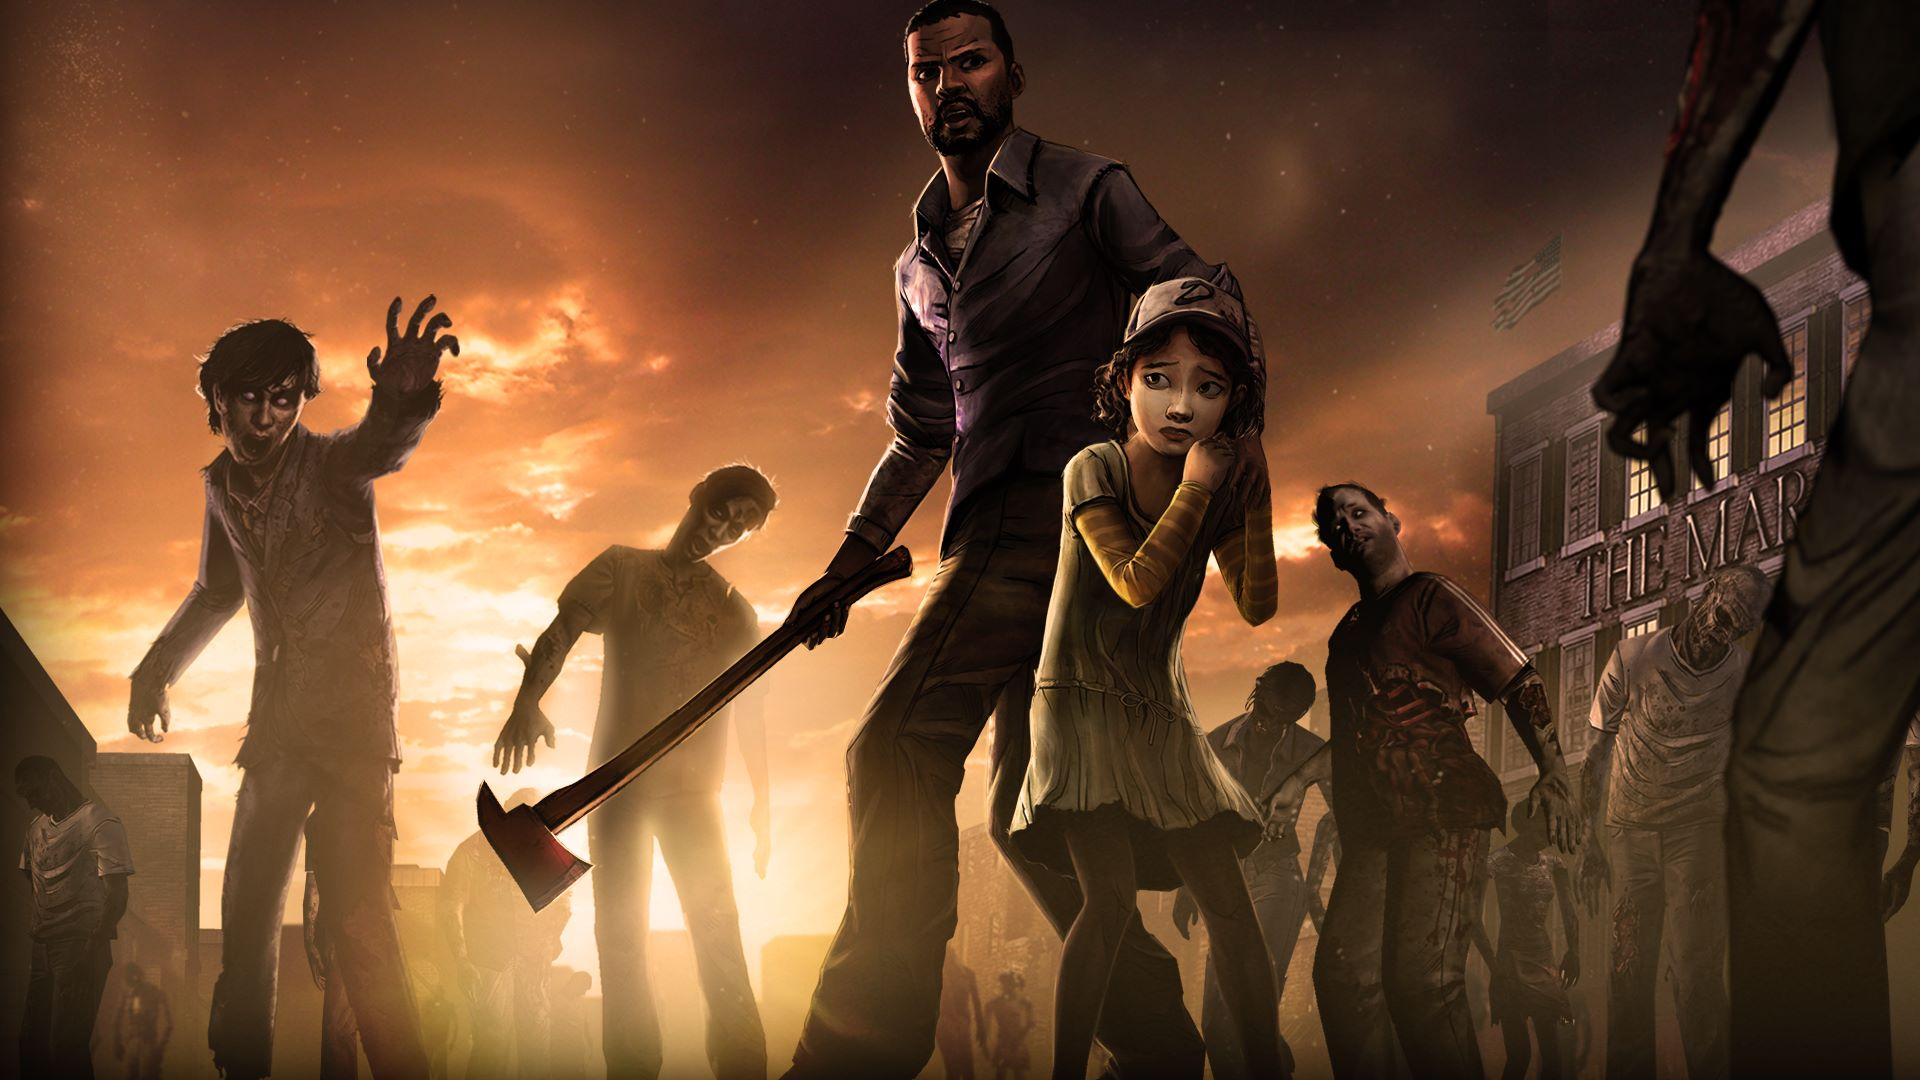 Buy The Walking Dead: The Complete First Season - Microsoft Store